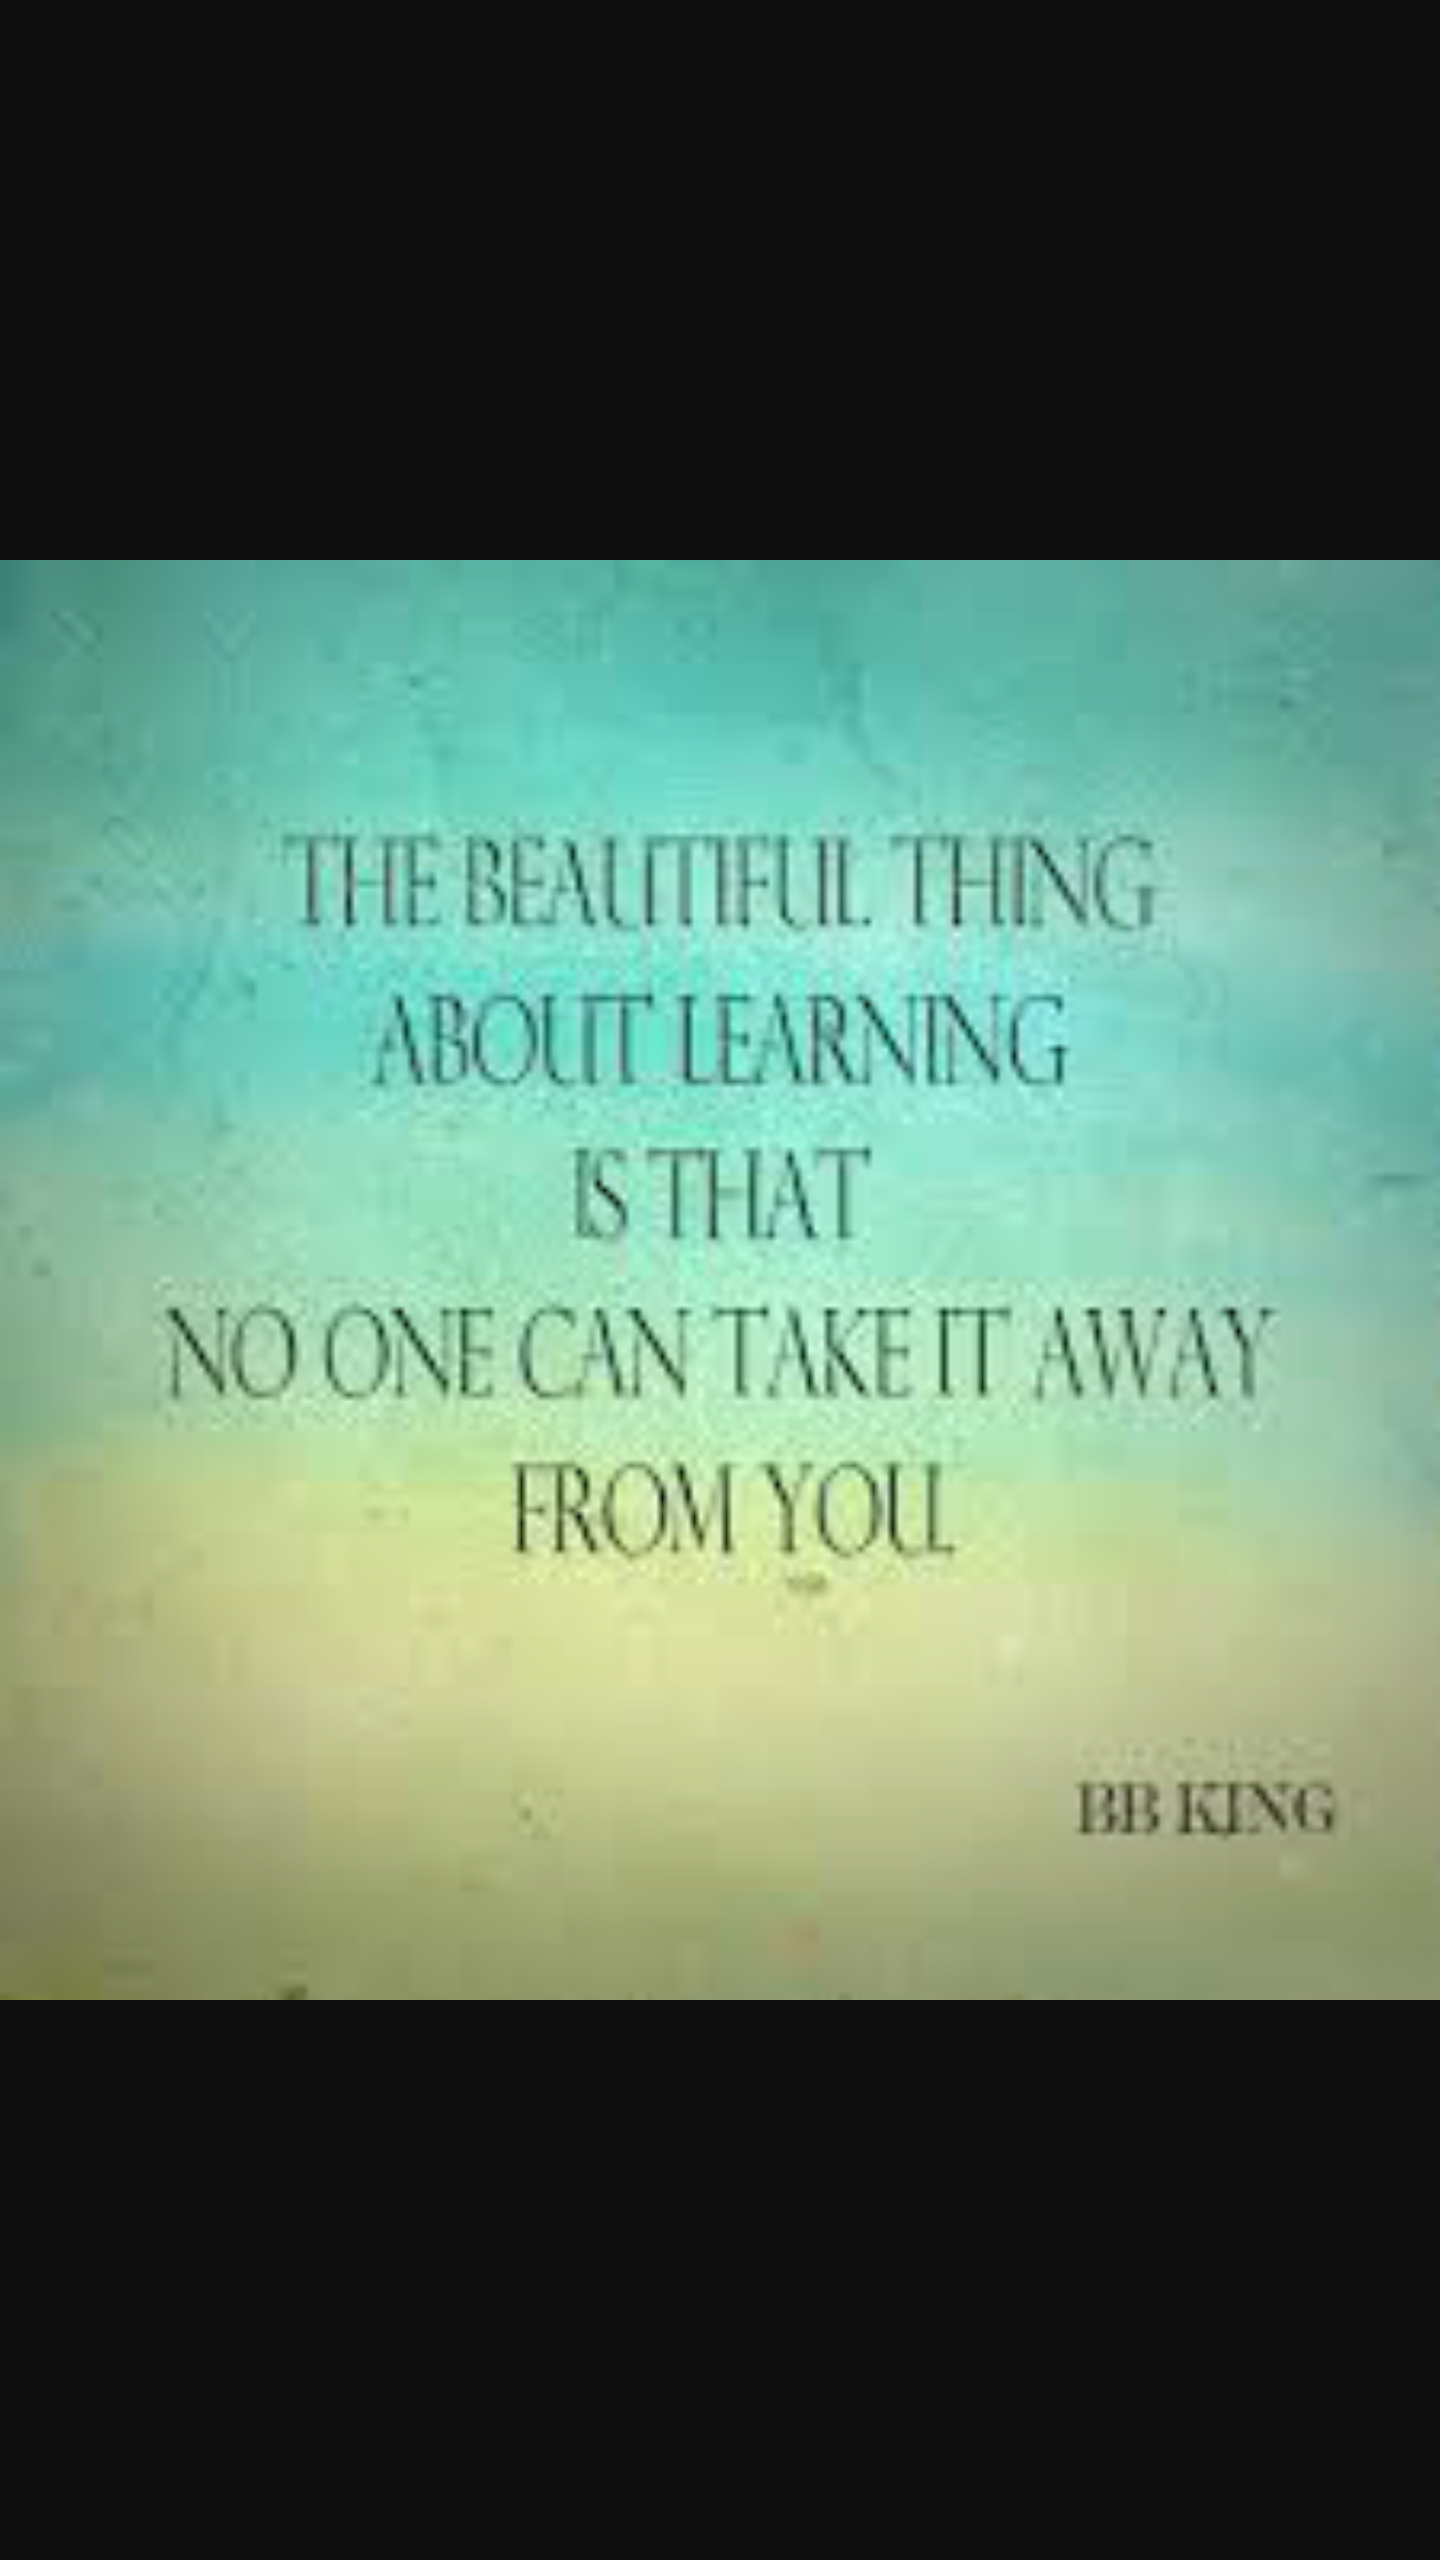 The beautiful thing about learning is that no one can take